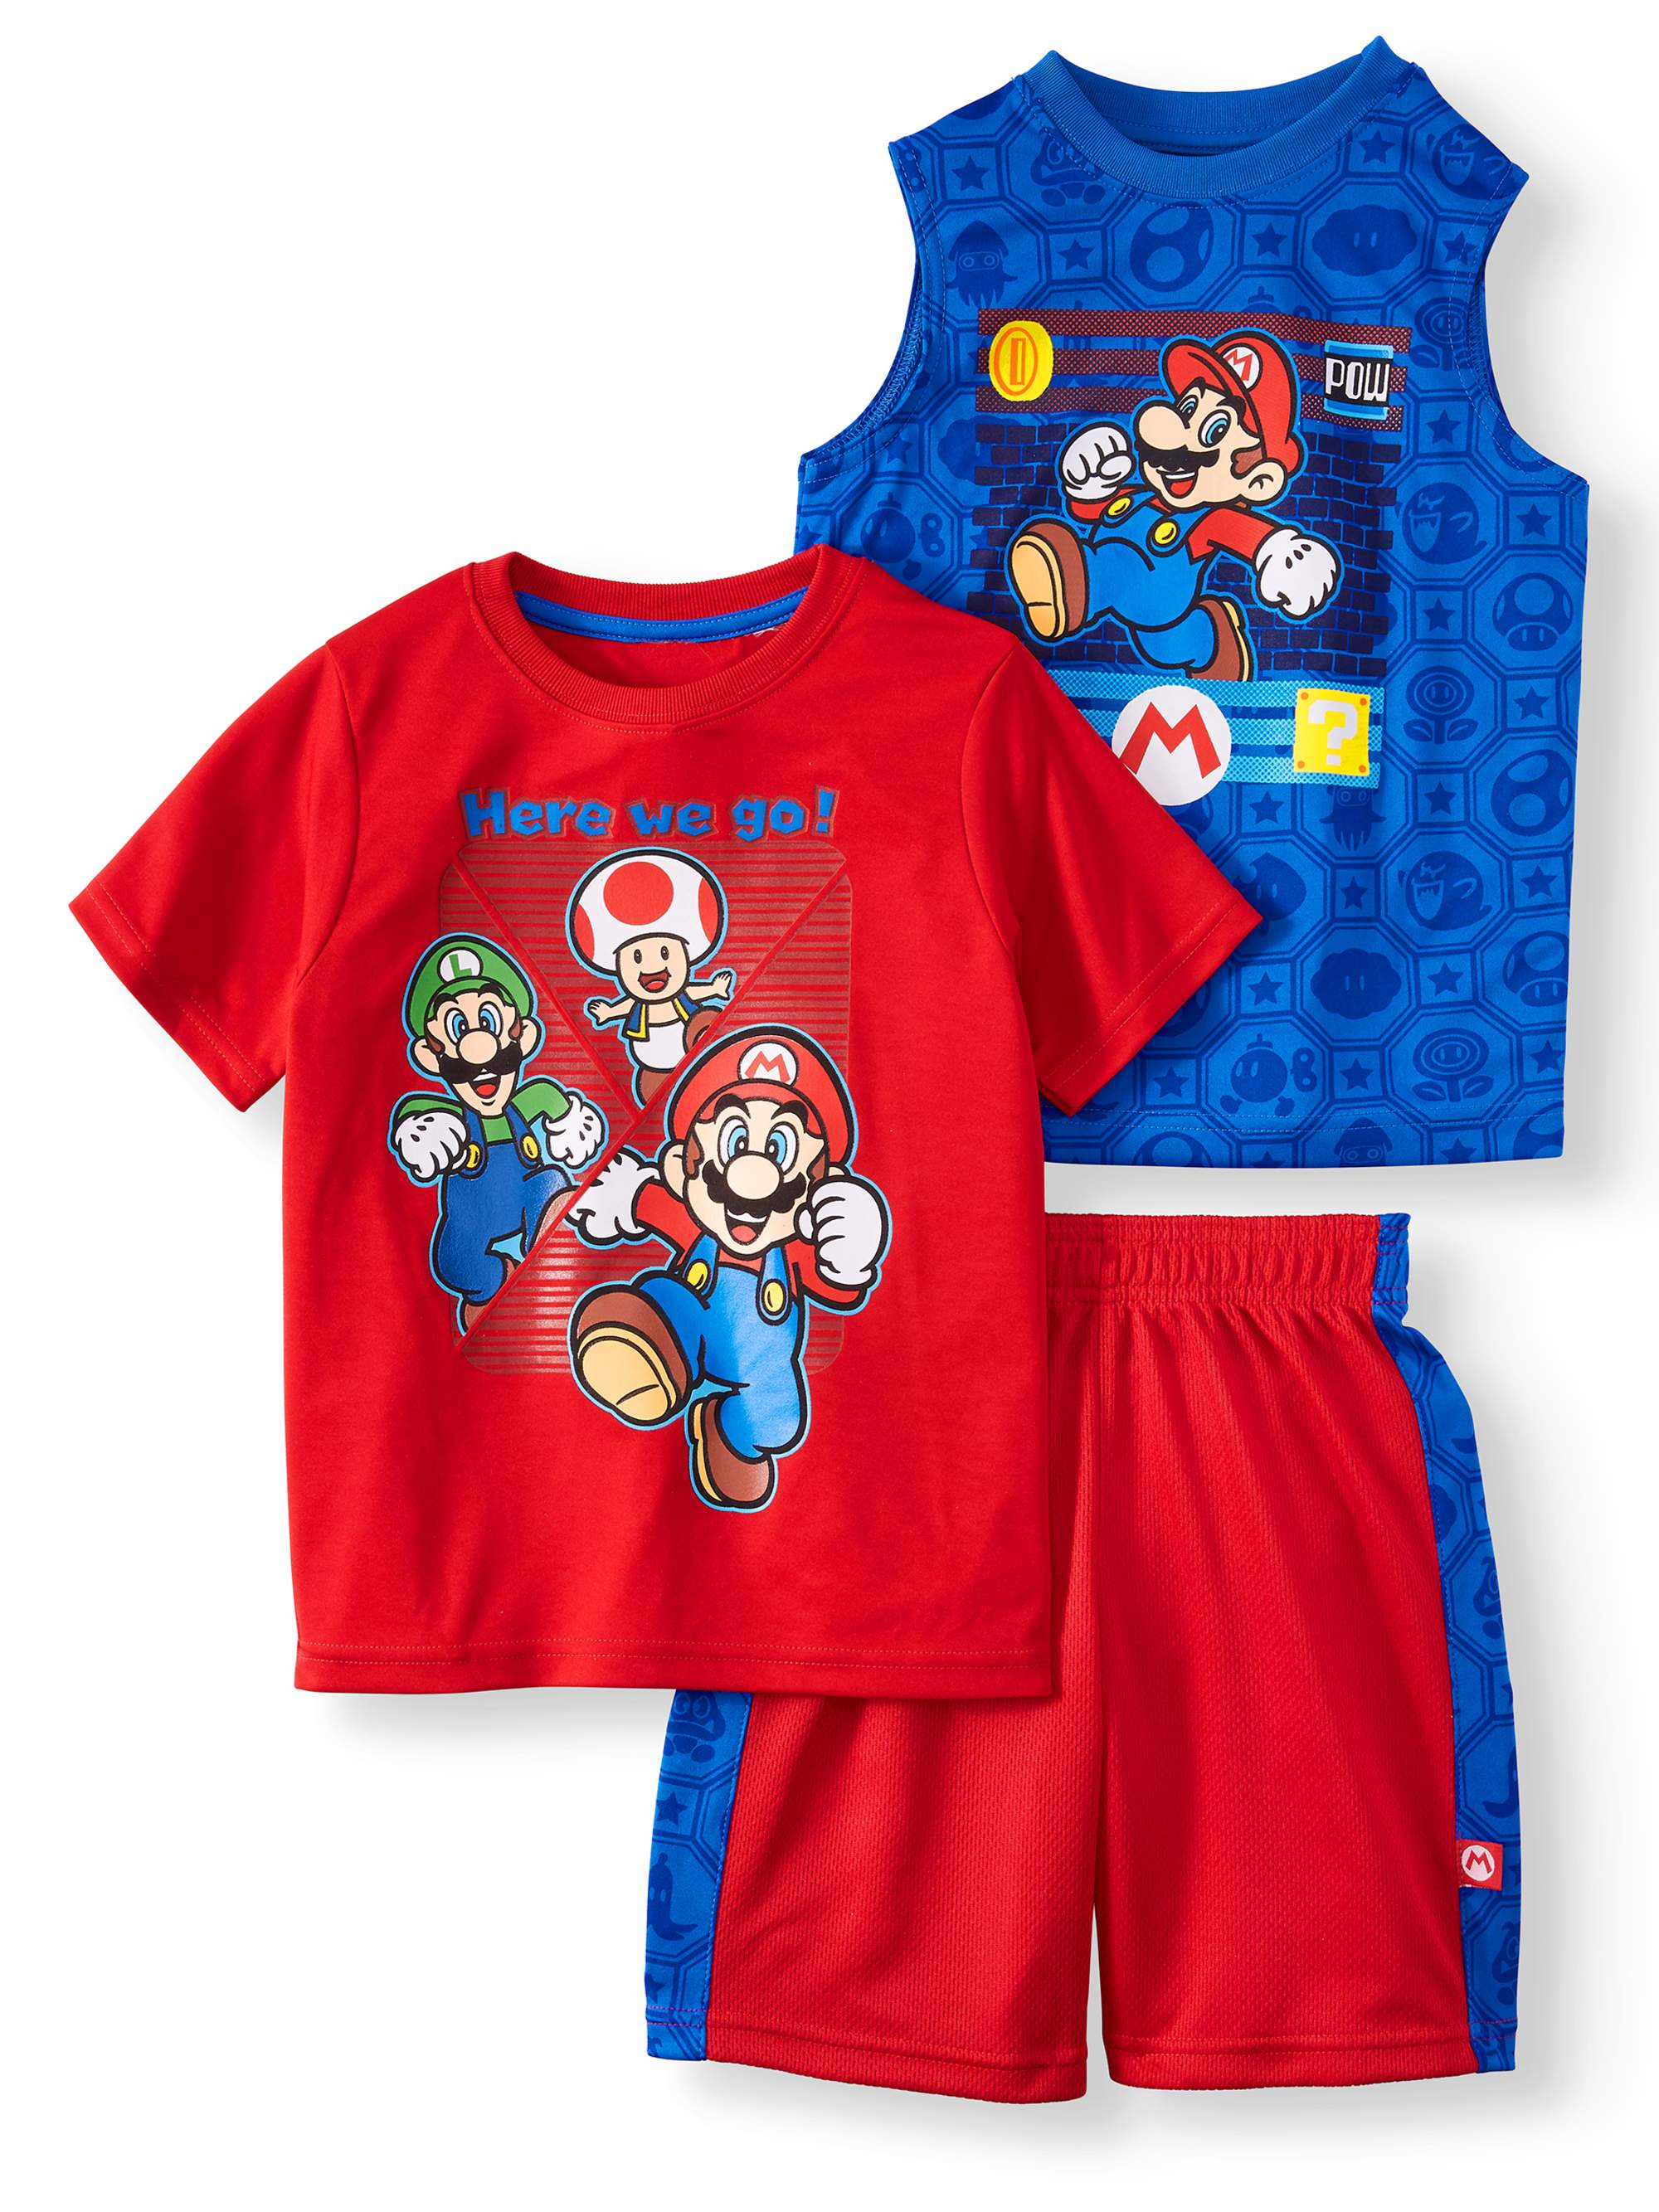 Super Mario Performance Tee, Muscle Tank, and Shorts, 3-Piece Outfit Set (Little Boys)